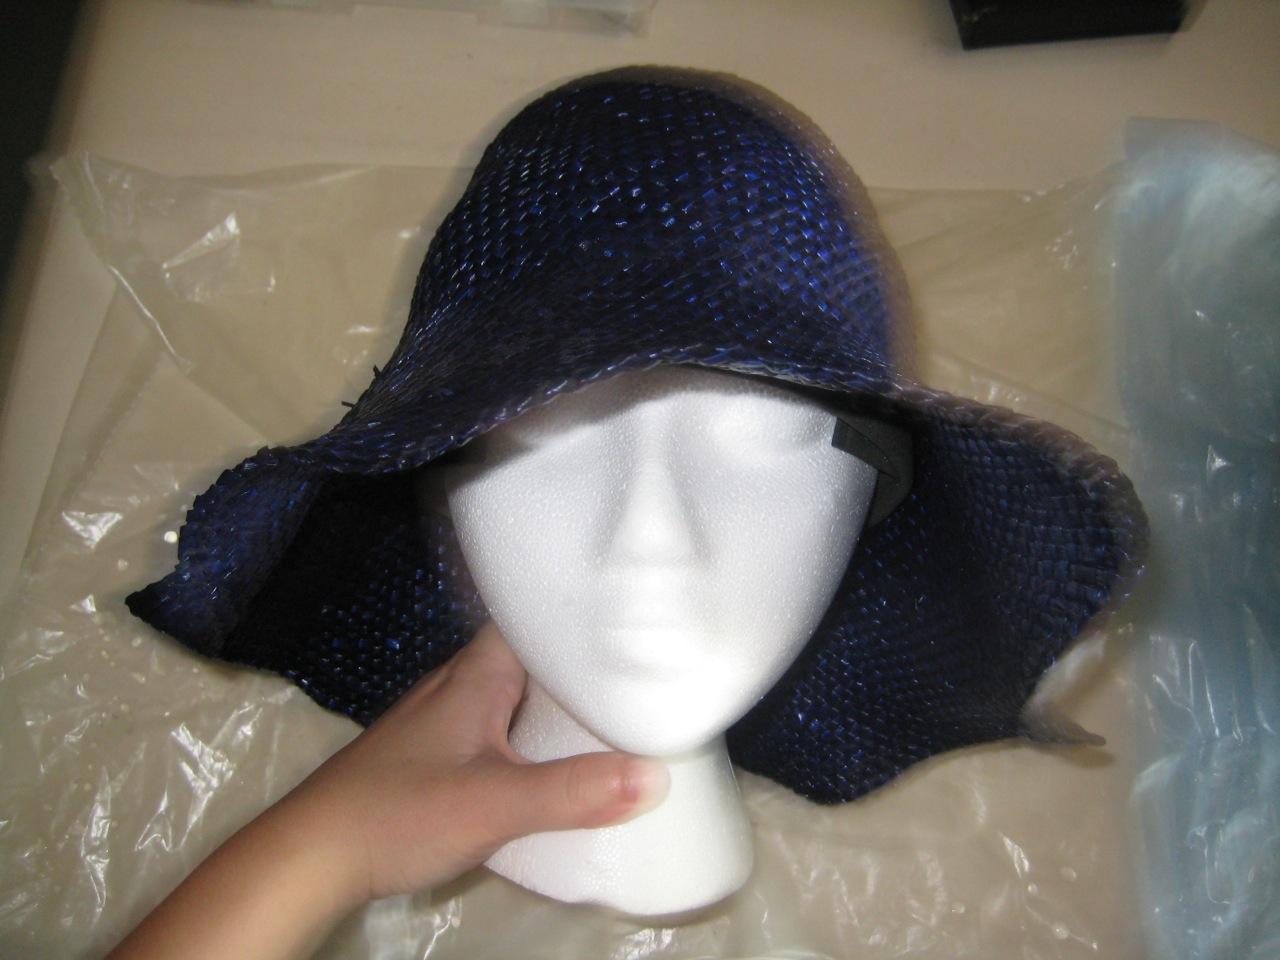 b111bd3cd54 The hat must remain wet and pliable for the rest of the shaping